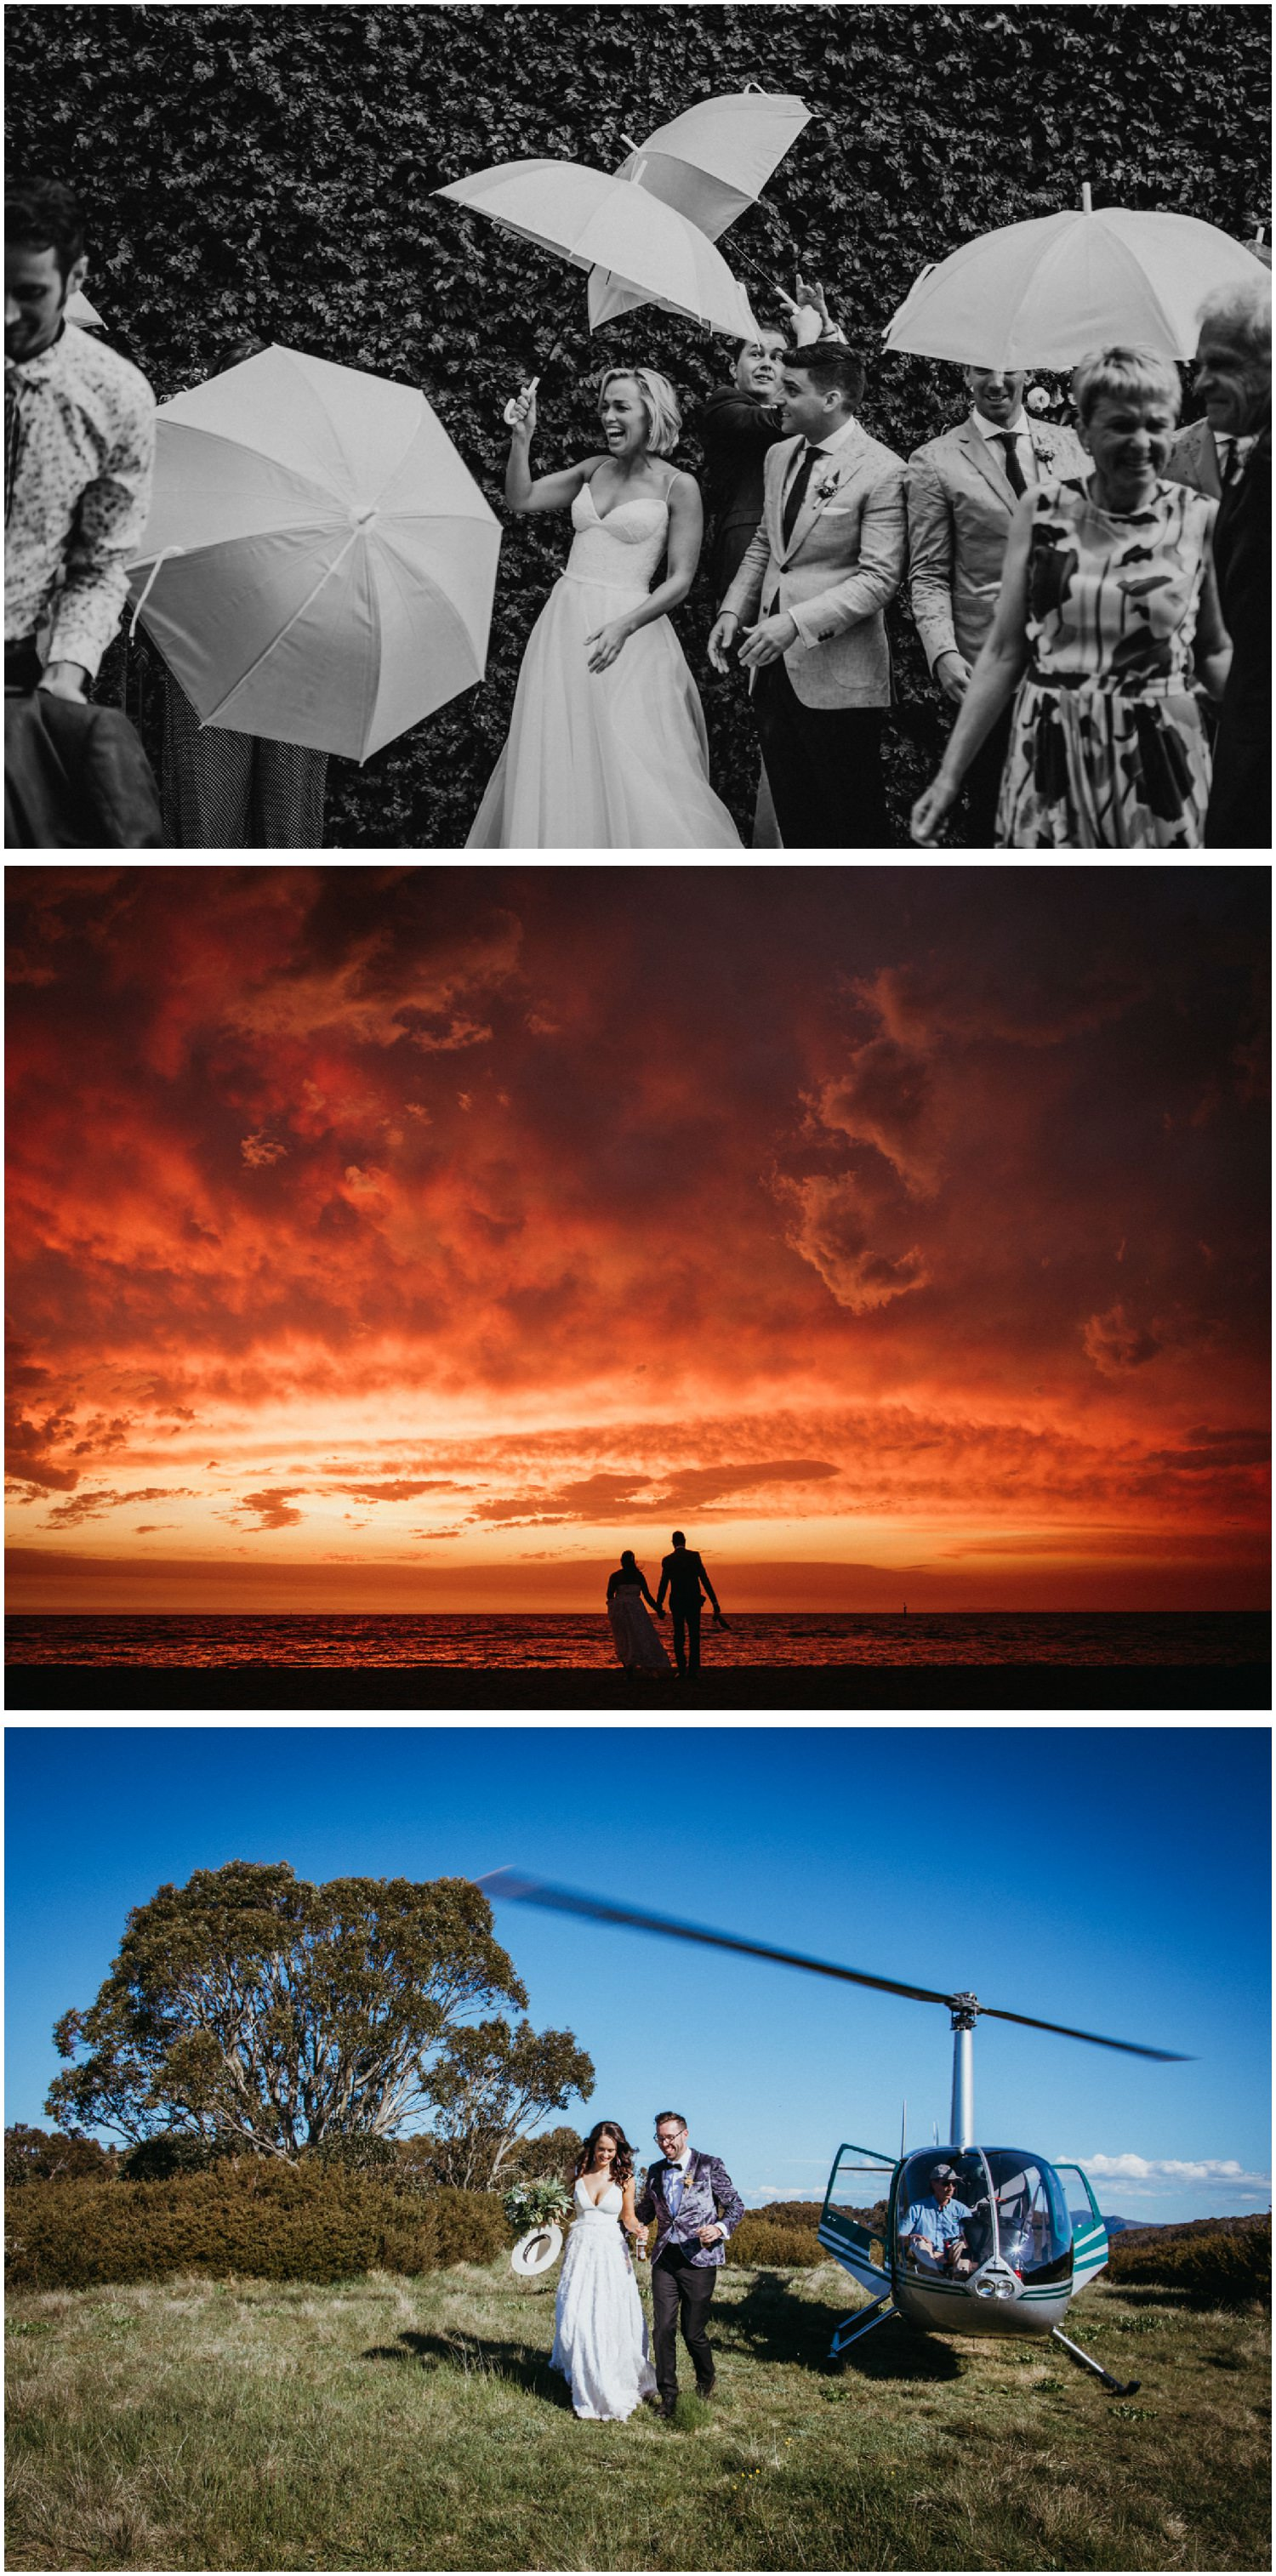 Melbourne Wedding Photographer - 2018 in review -185A0218.jpg